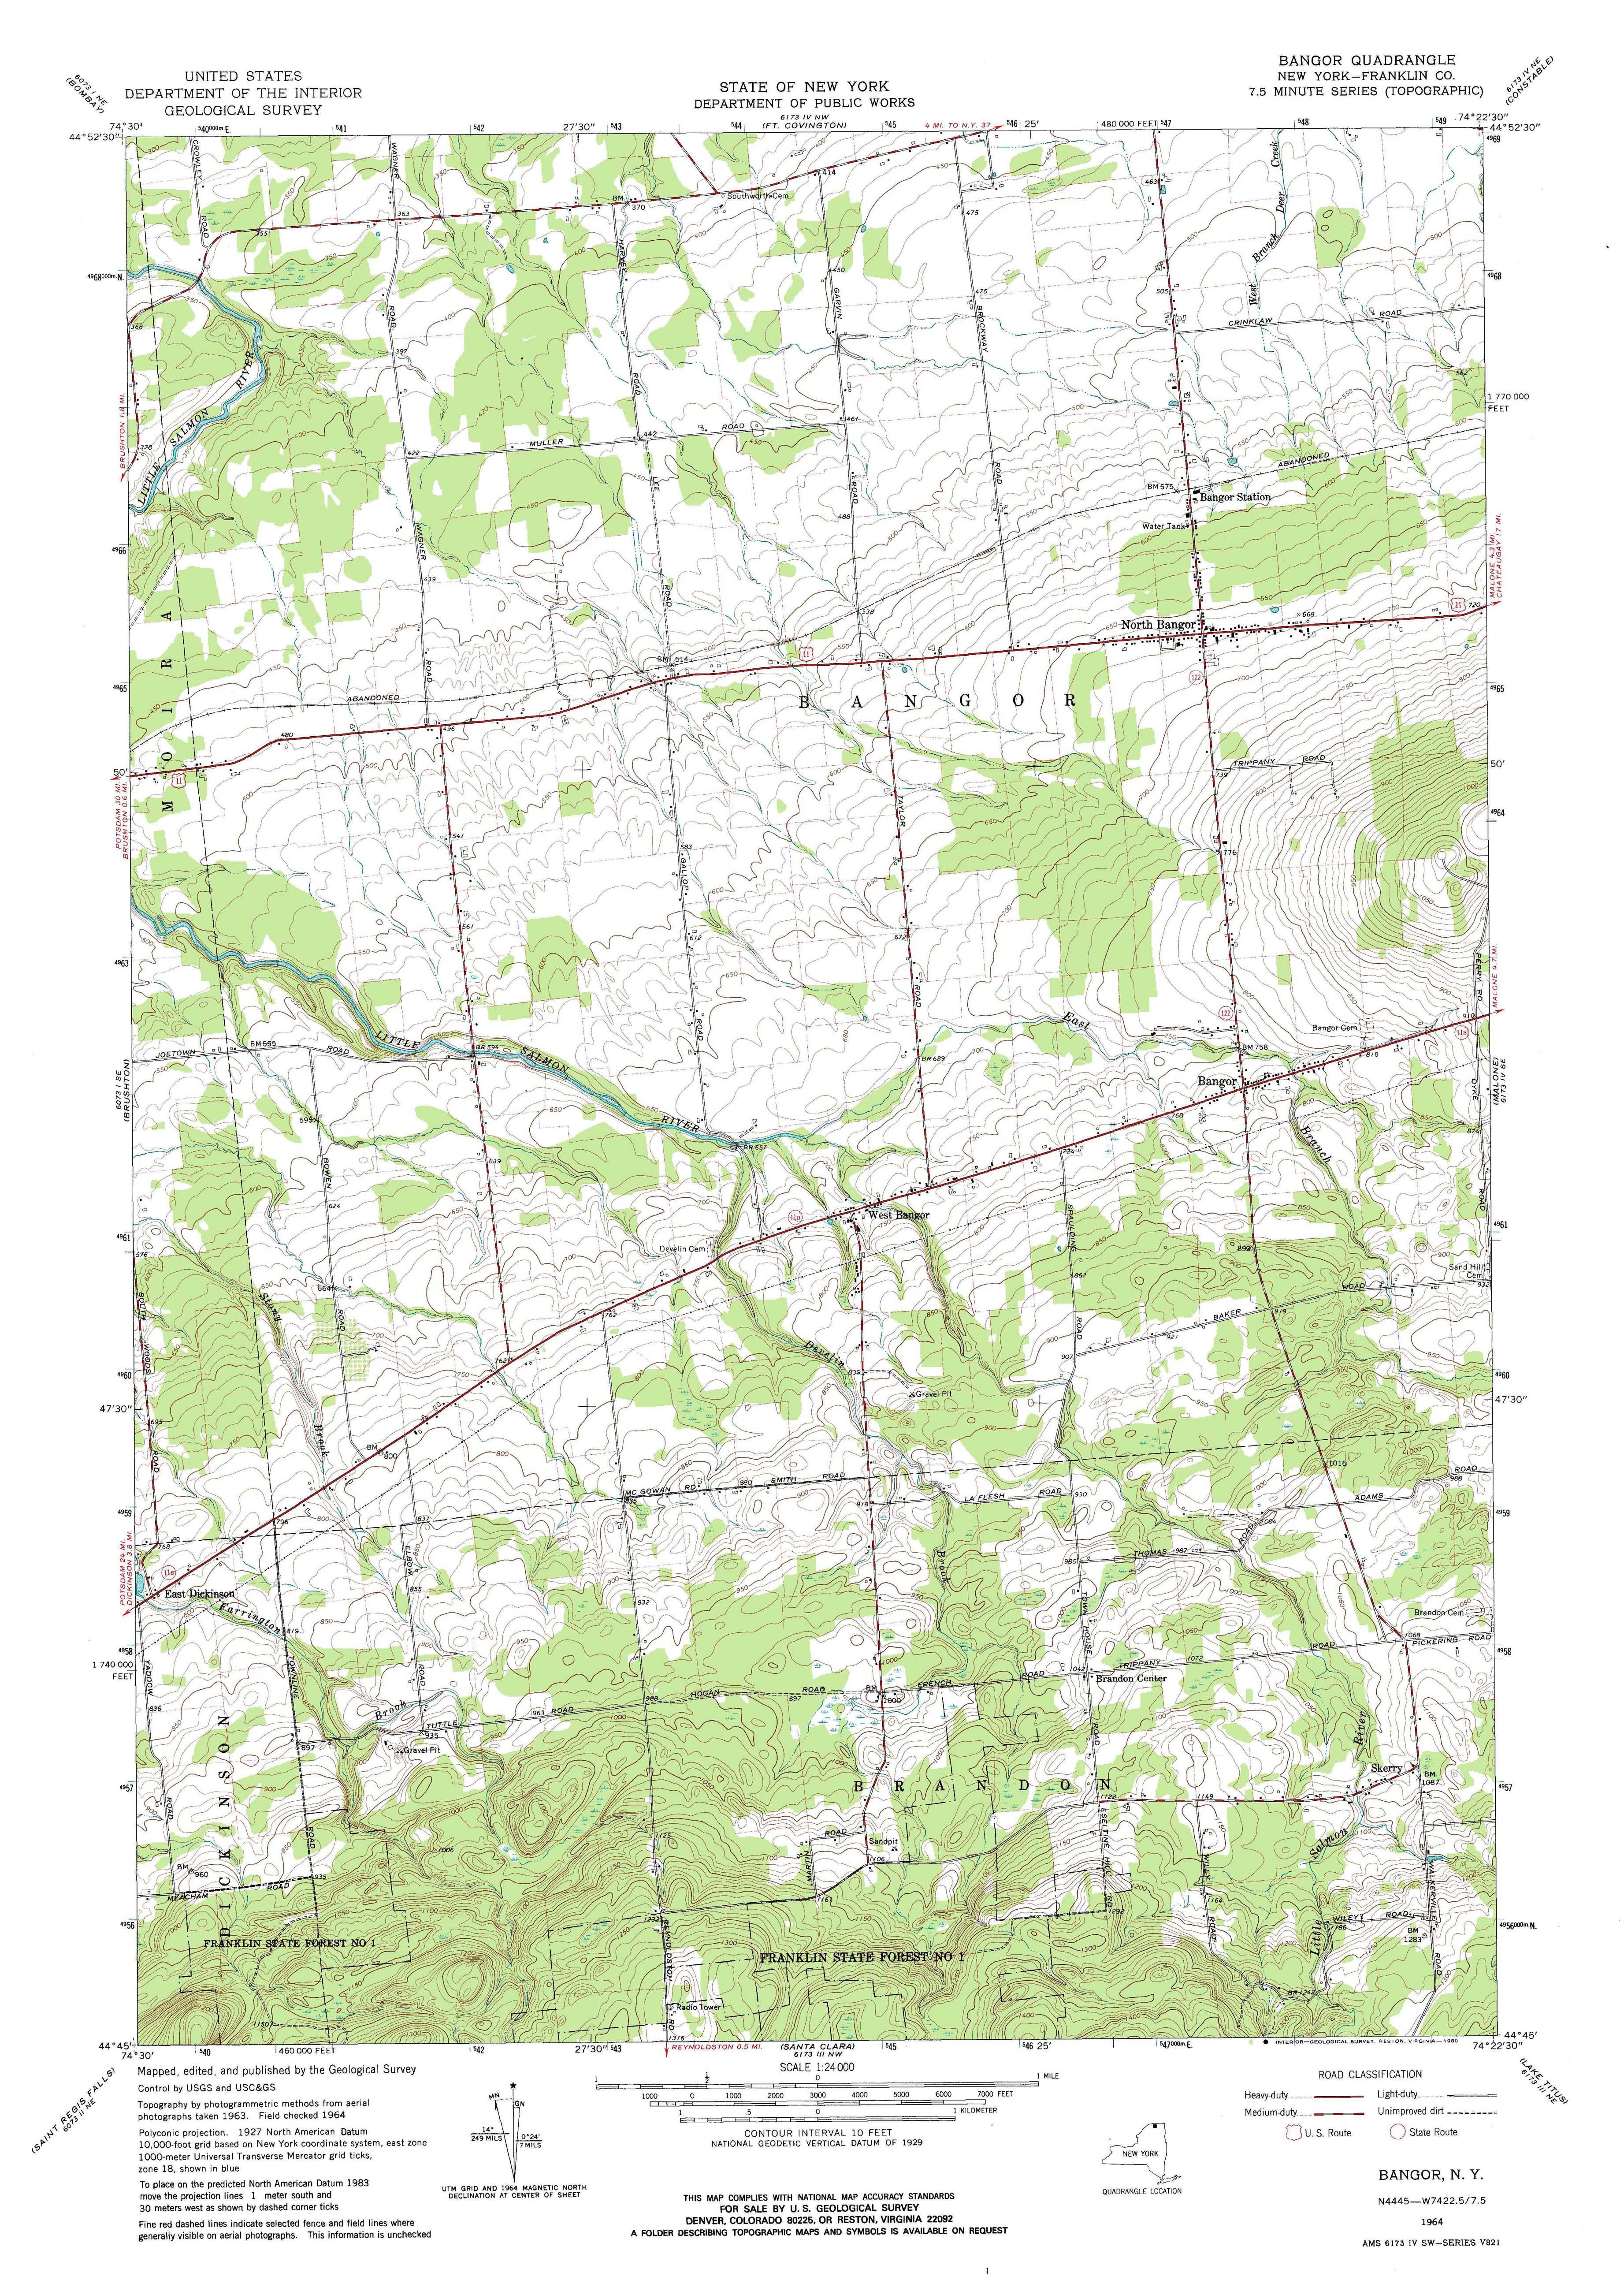 New York Topo Maps Minute Topographic Maps Scale - Us topographic maps online free